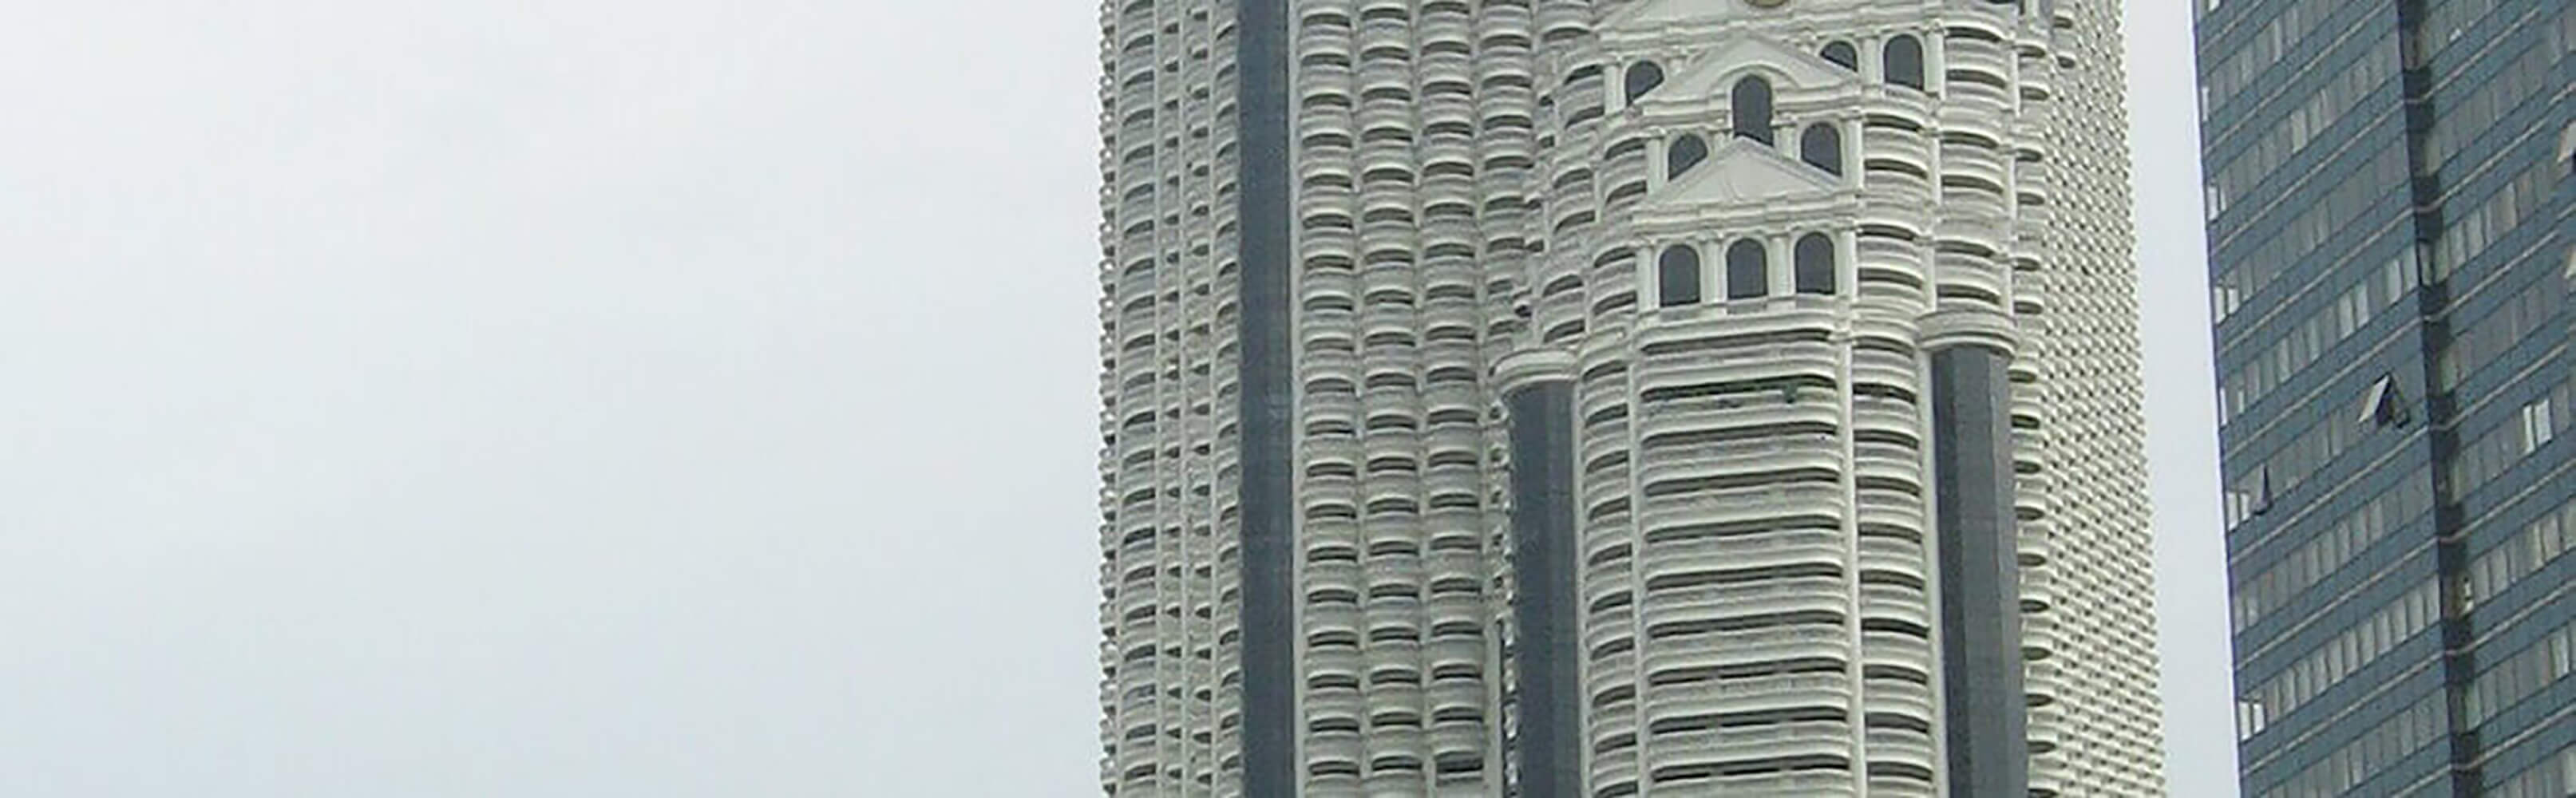 State Tower 1